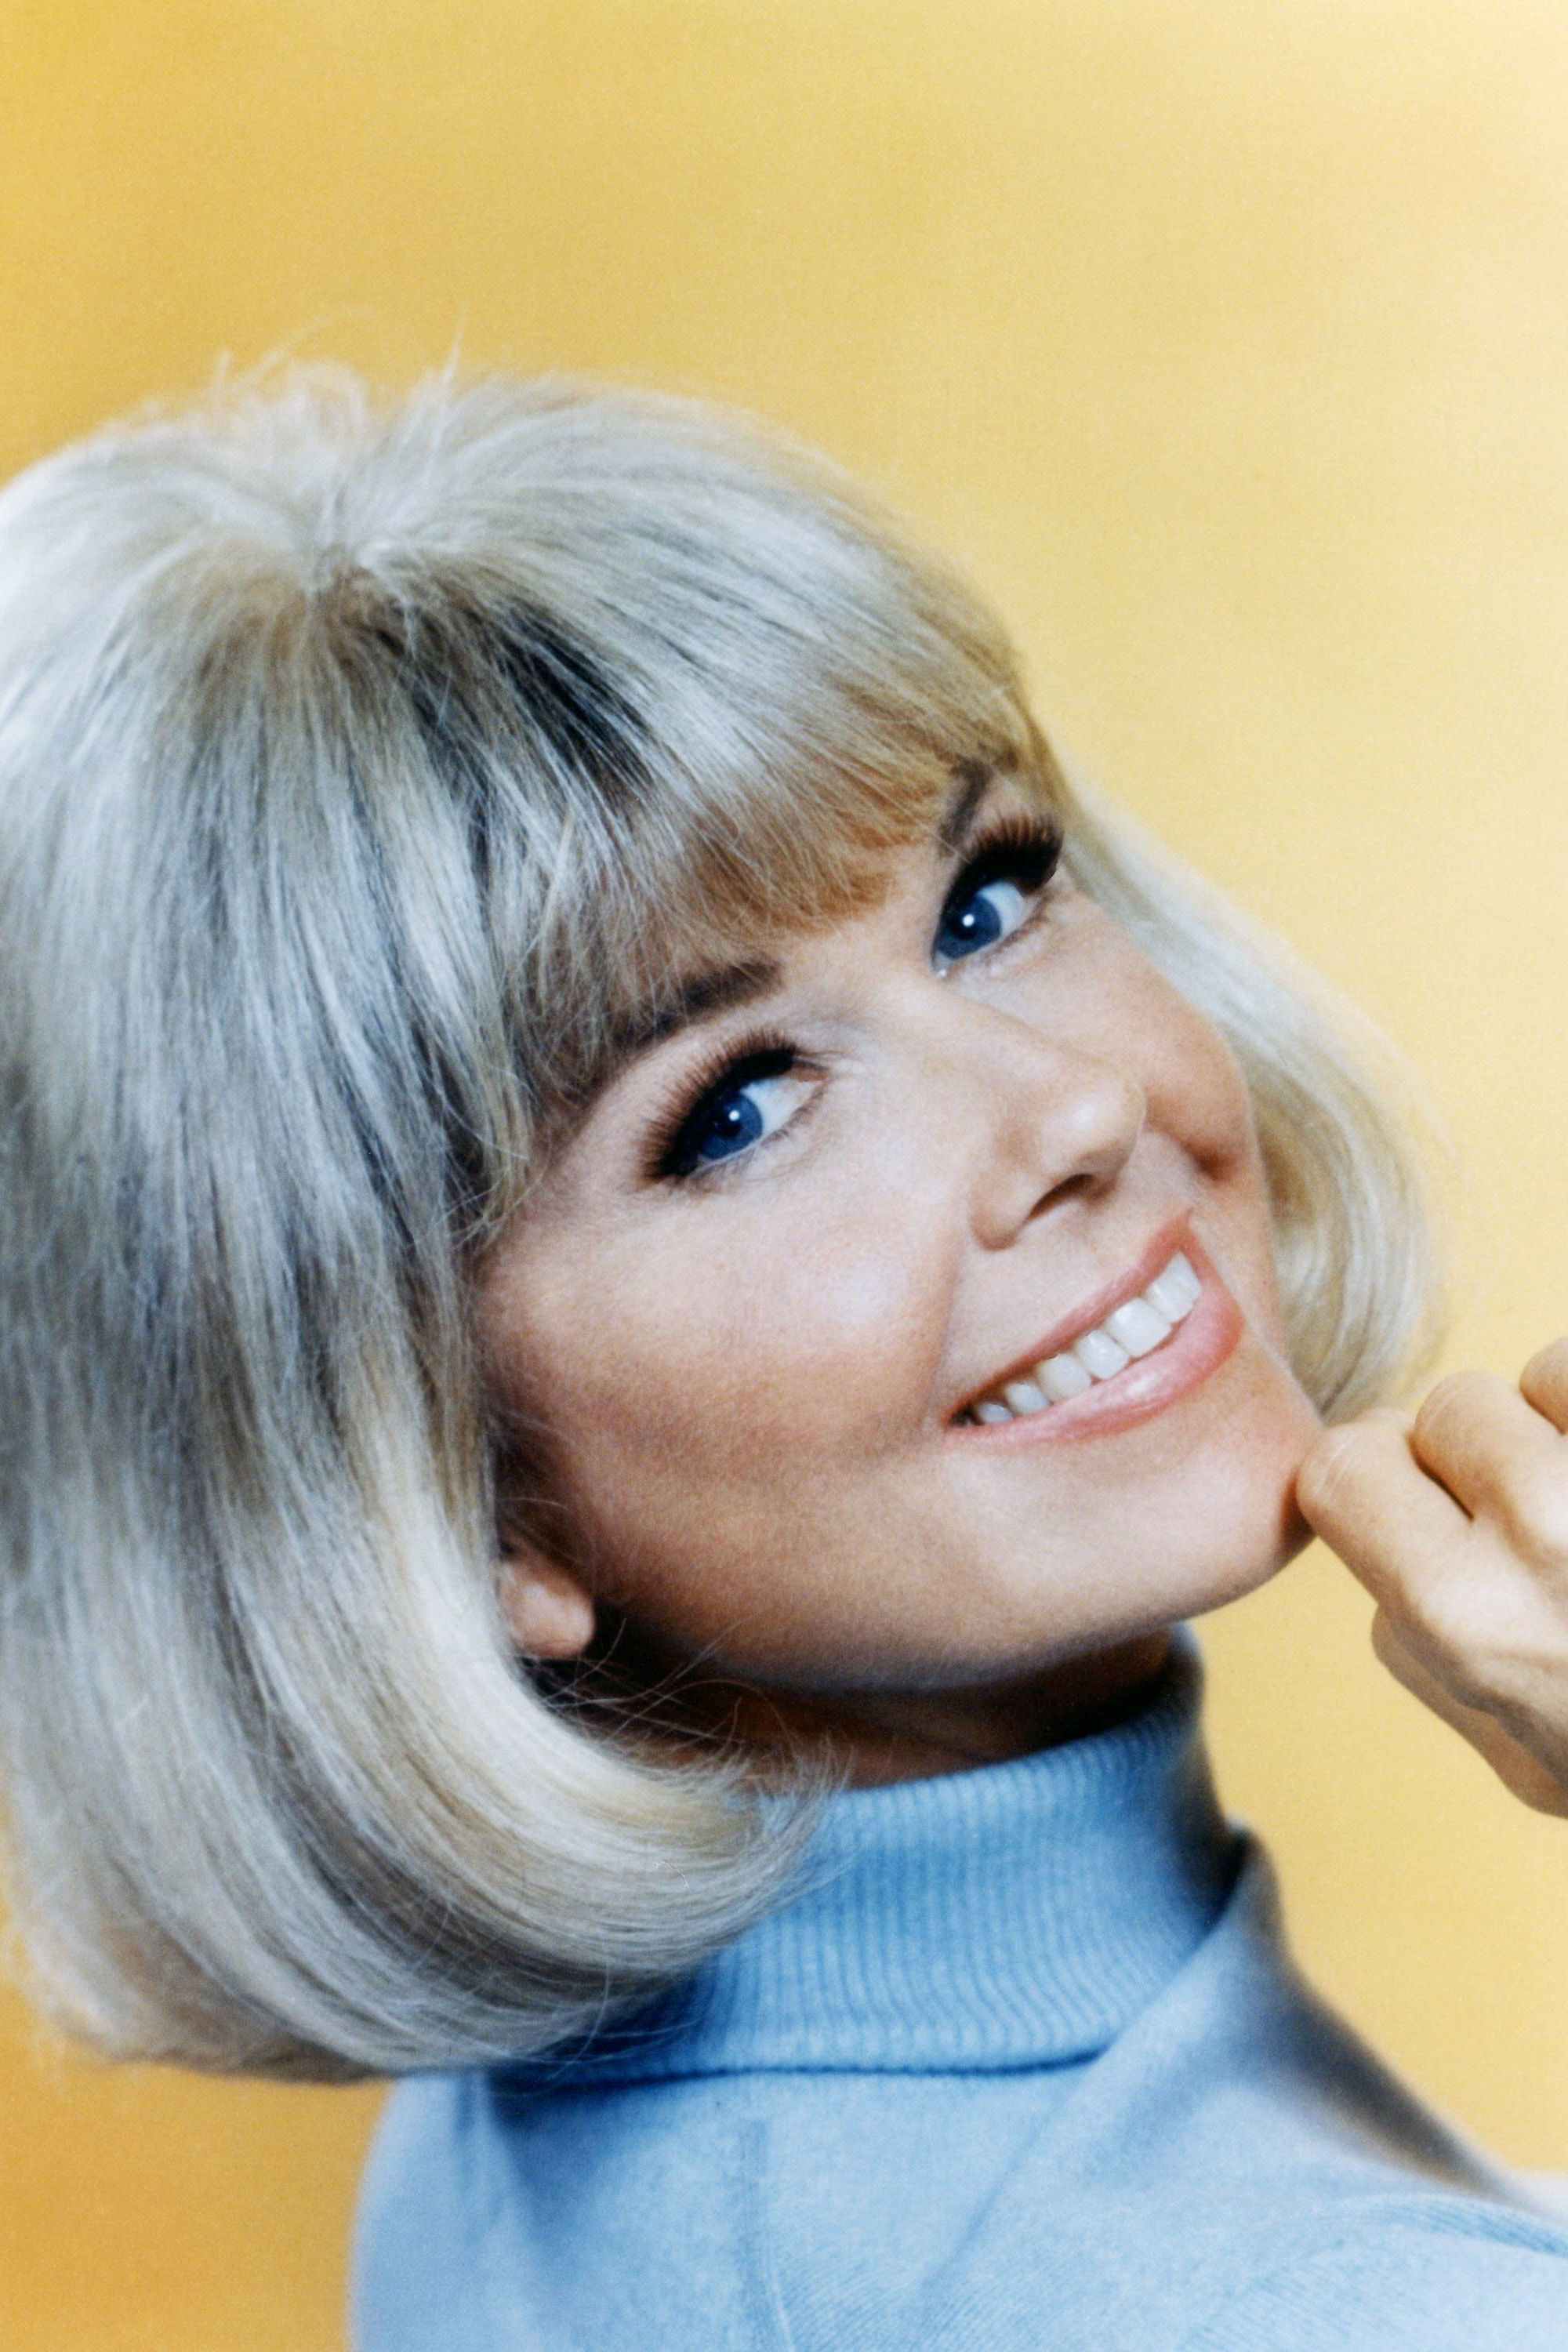 Doris Day Finds Out She's Two Years Older Than She Thought on Her 95th Birthday